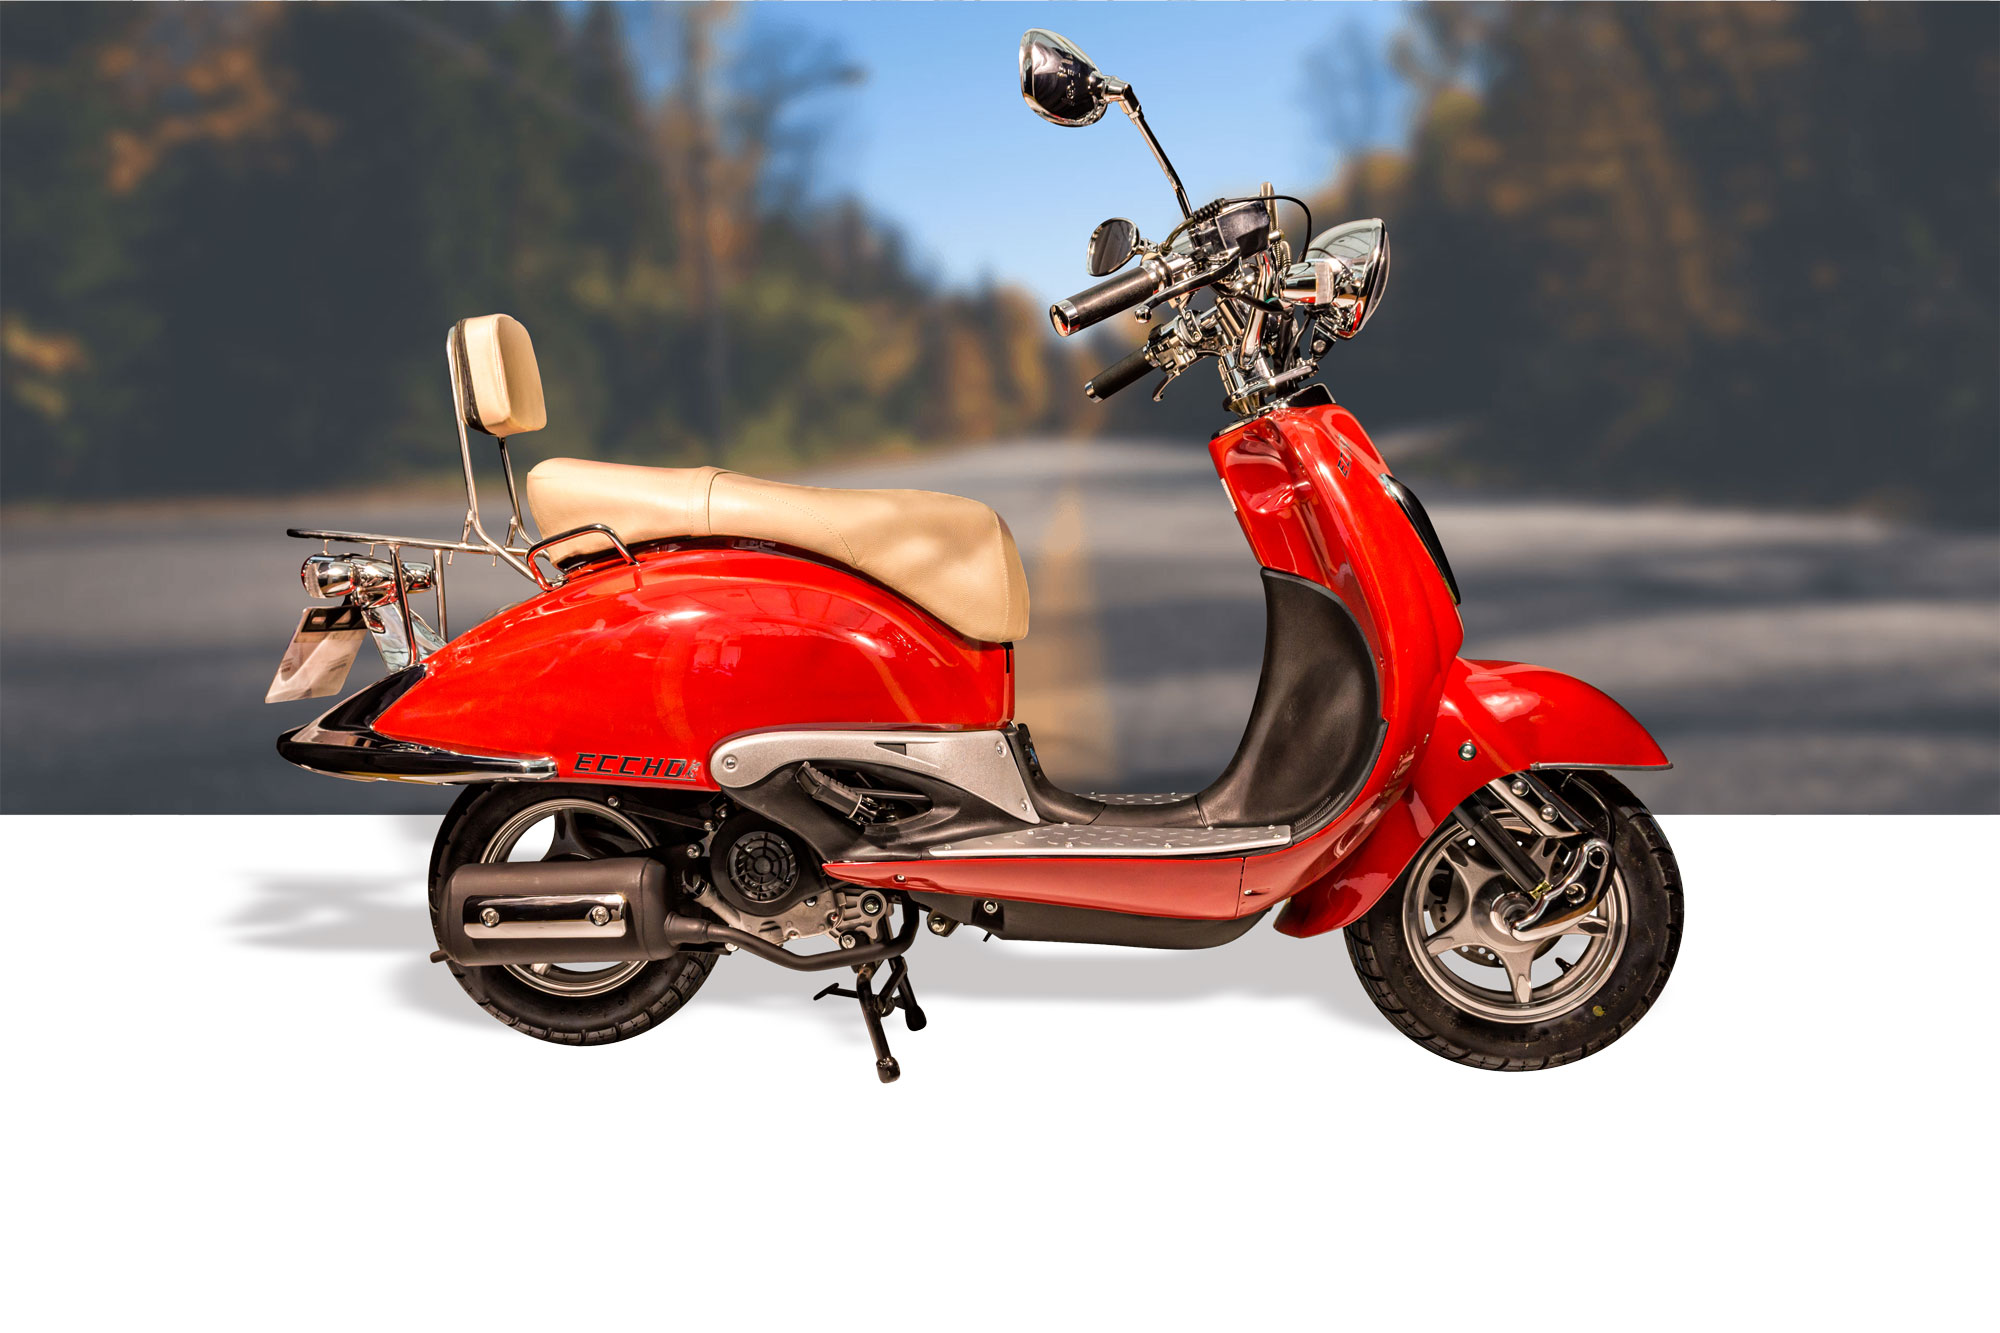 scooter ry50qt 8 red scooters eccho cholet acheter un. Black Bedroom Furniture Sets. Home Design Ideas